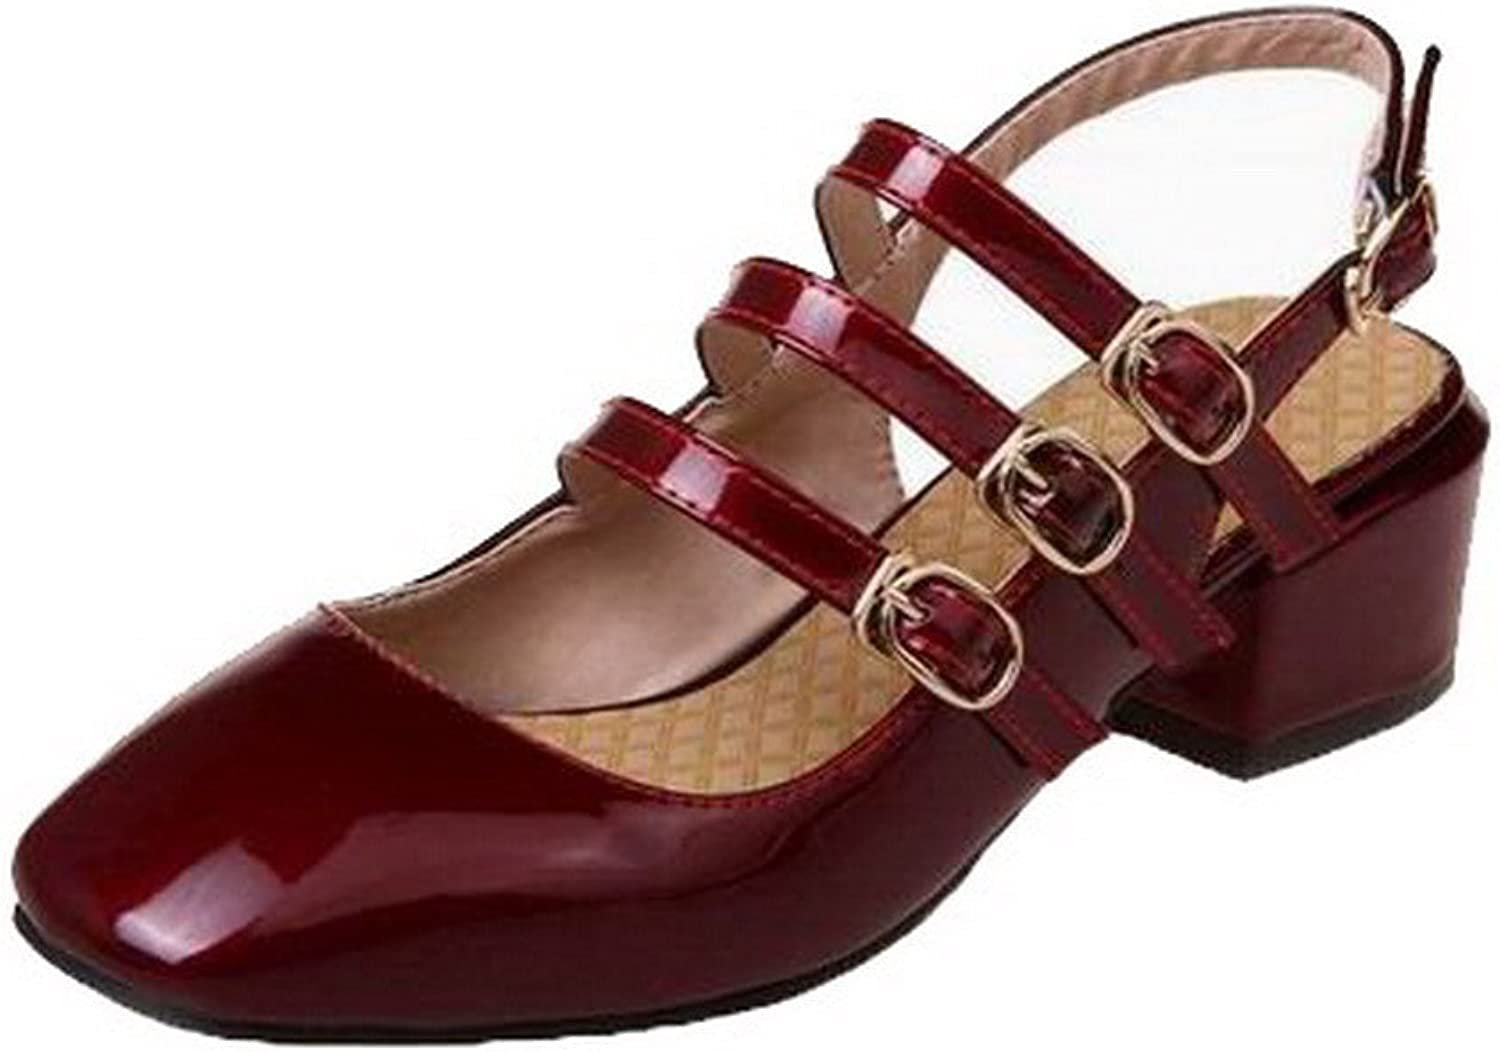 AmoonyFashion Women's Patent Leather Low-Heels Closed-Toe Solid Buckle Sandals, BUTLT006942